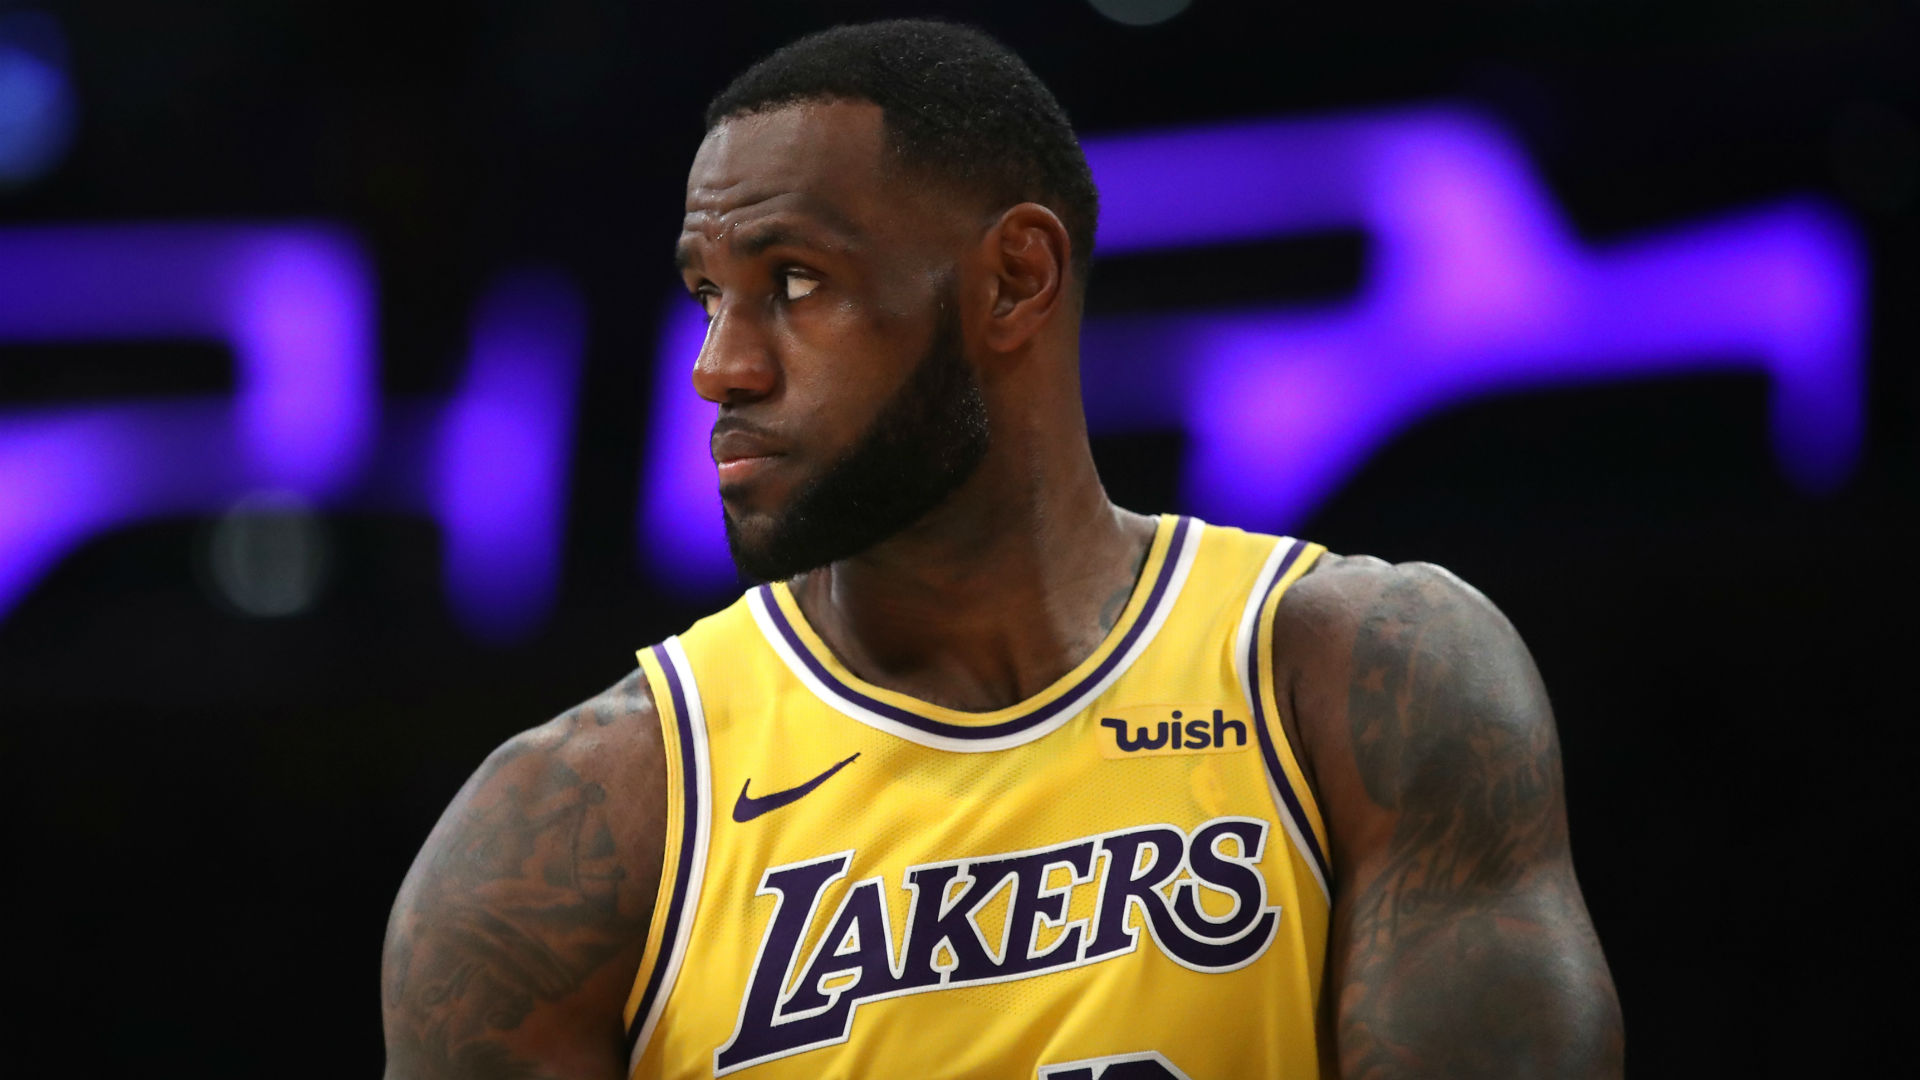 5e2f961dad6 Lakers star LeBron James will not play vs. Jazz